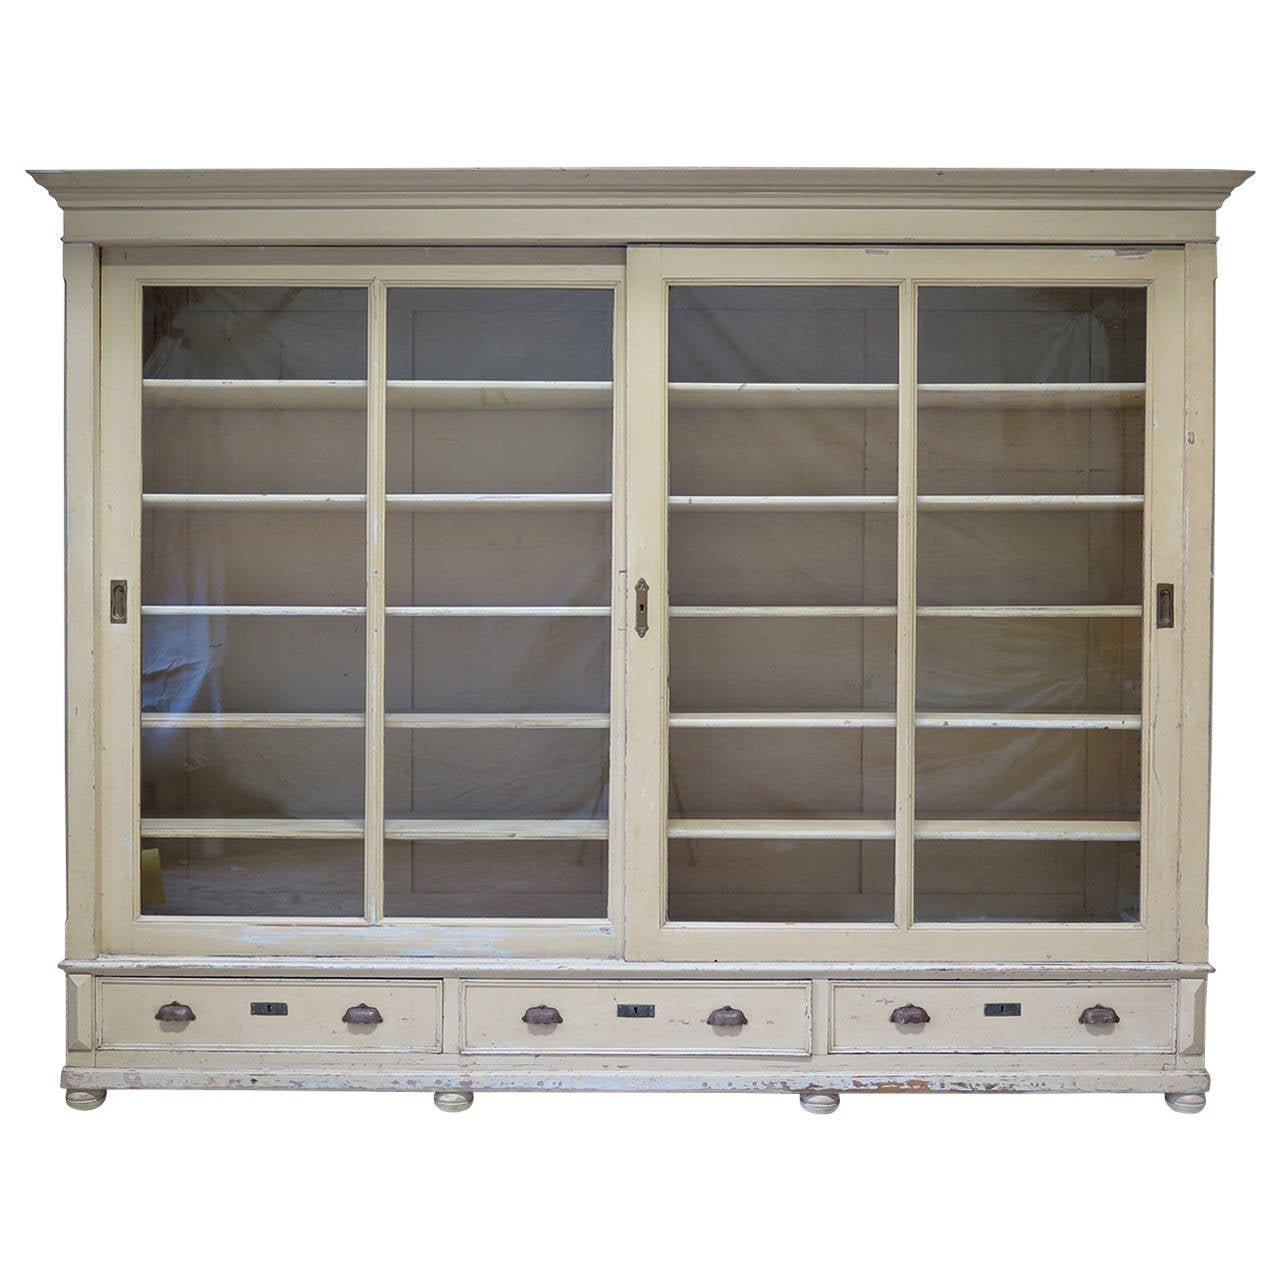 Design Glass Bookcase elegant bookcase with sliding glass doors france early 20th century 1